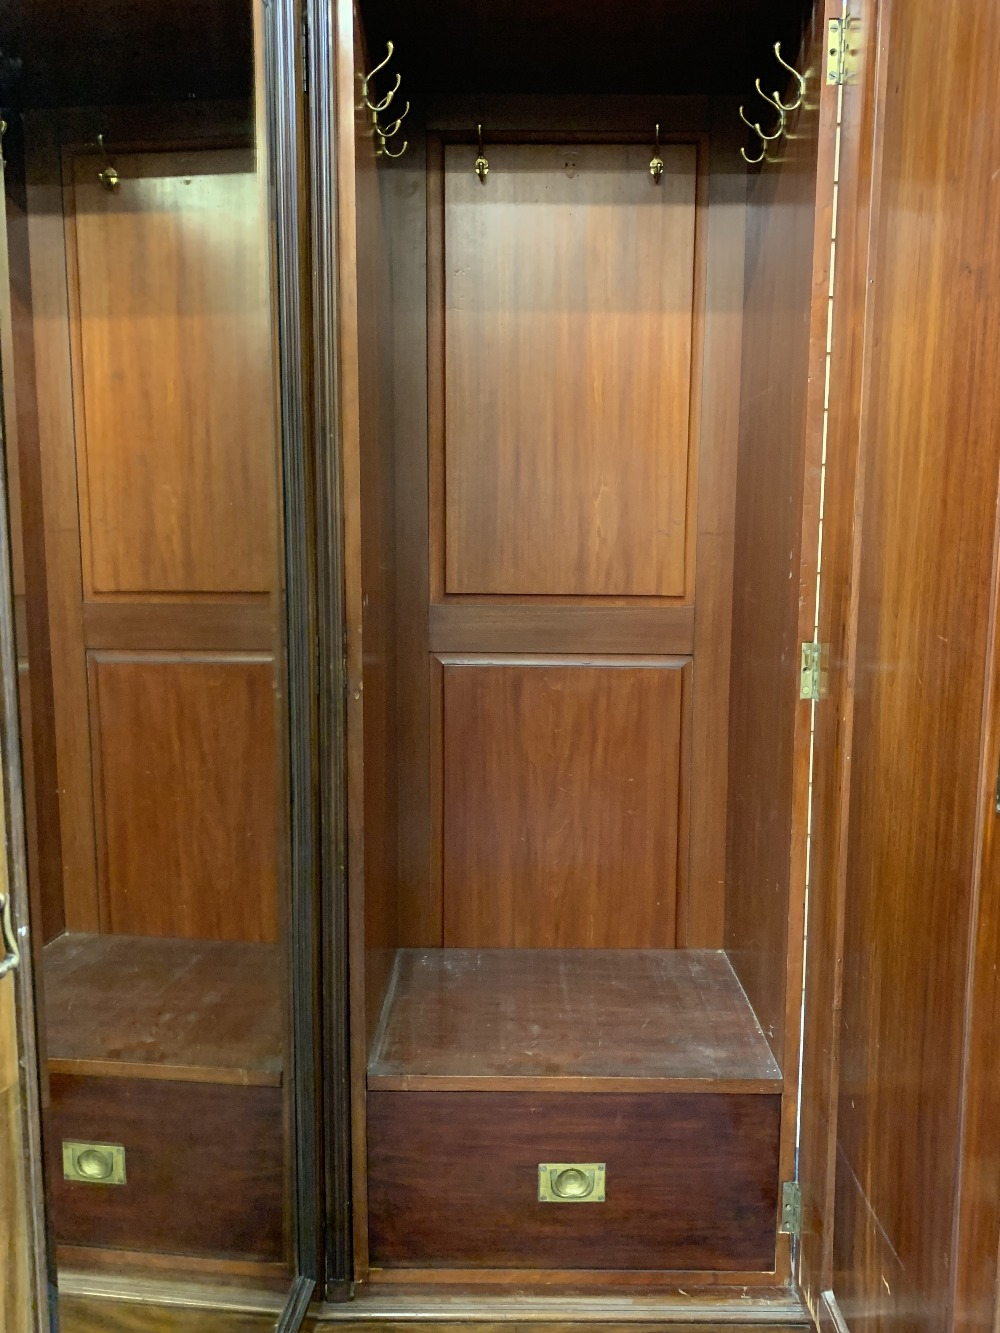 CIRCA 1900 MAHOGANY TRIPLE WARDROBE with dentil carved cornice and large central mirrored door - Image 3 of 6